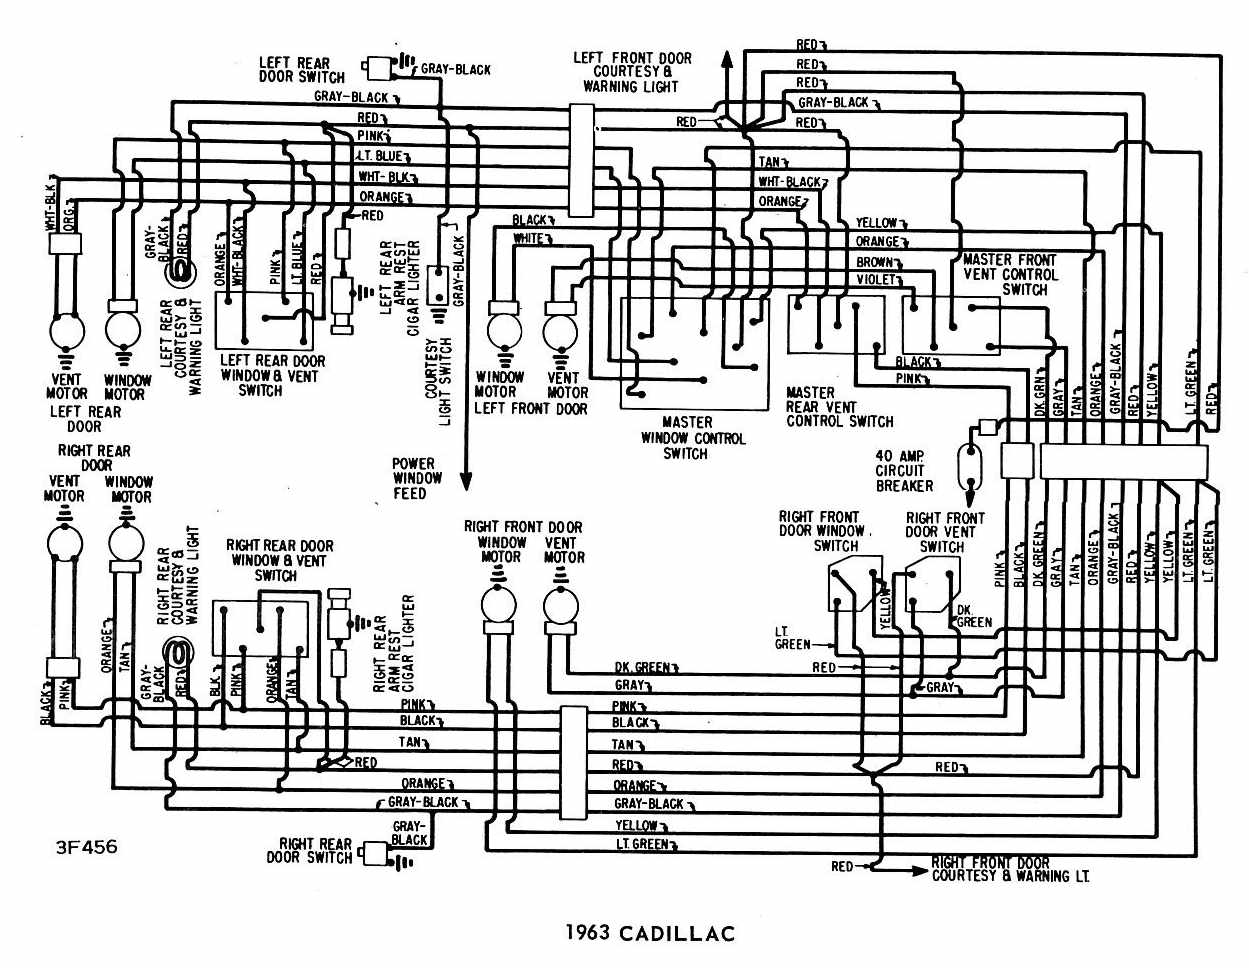 Cadillac Wiring Diagrams Automotive Guide And Troubleshooting Of 1976 Chevy Air Conditioning Diagram For Monza Fuel Pump Third Rh 7 21 Jacobwinterstein Com